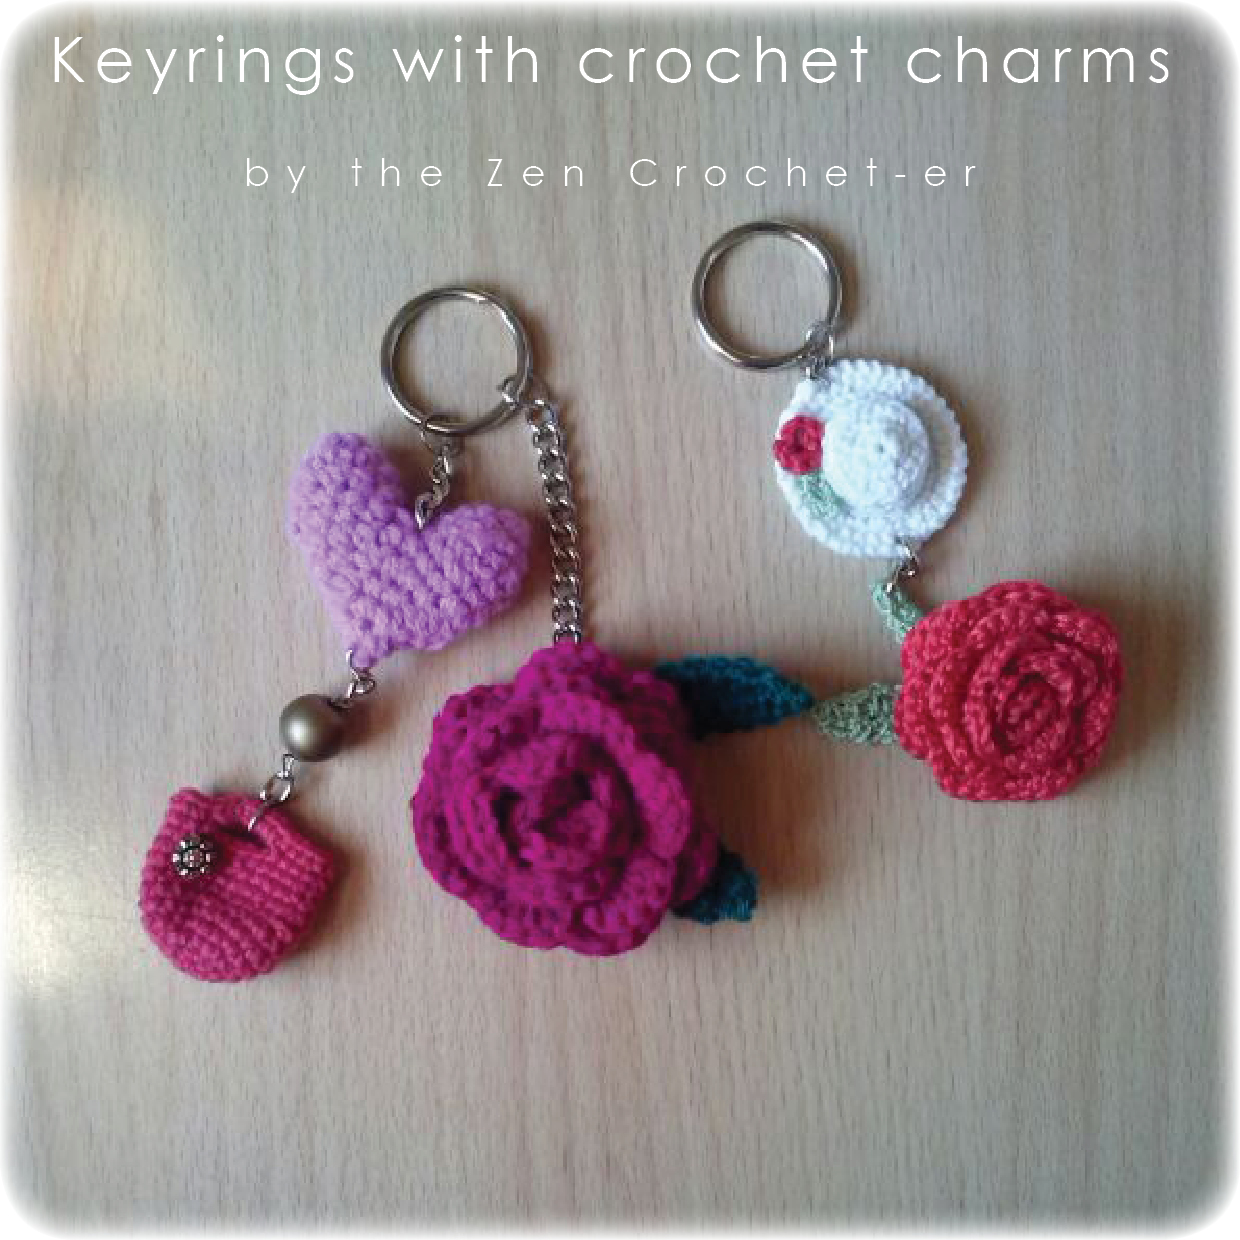 Crochet Keychain : The Zen Crocheter